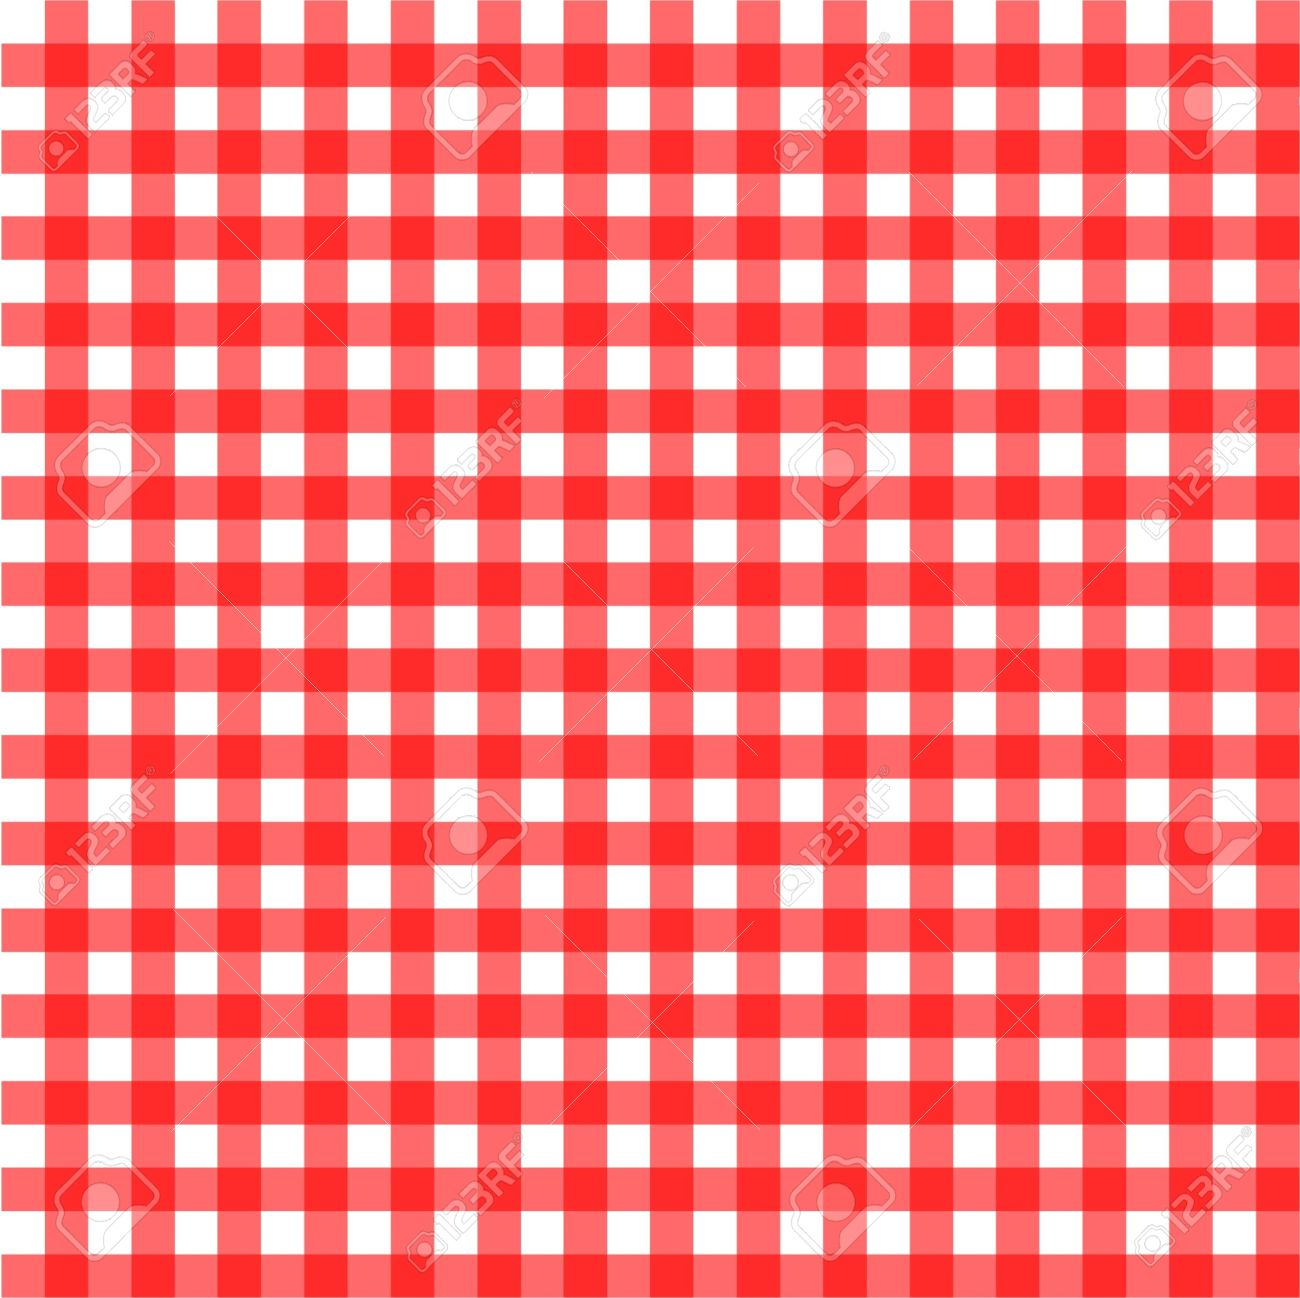 Seamless Striped Pattern Royalty Free Cliparts, Vectors, And Stock.